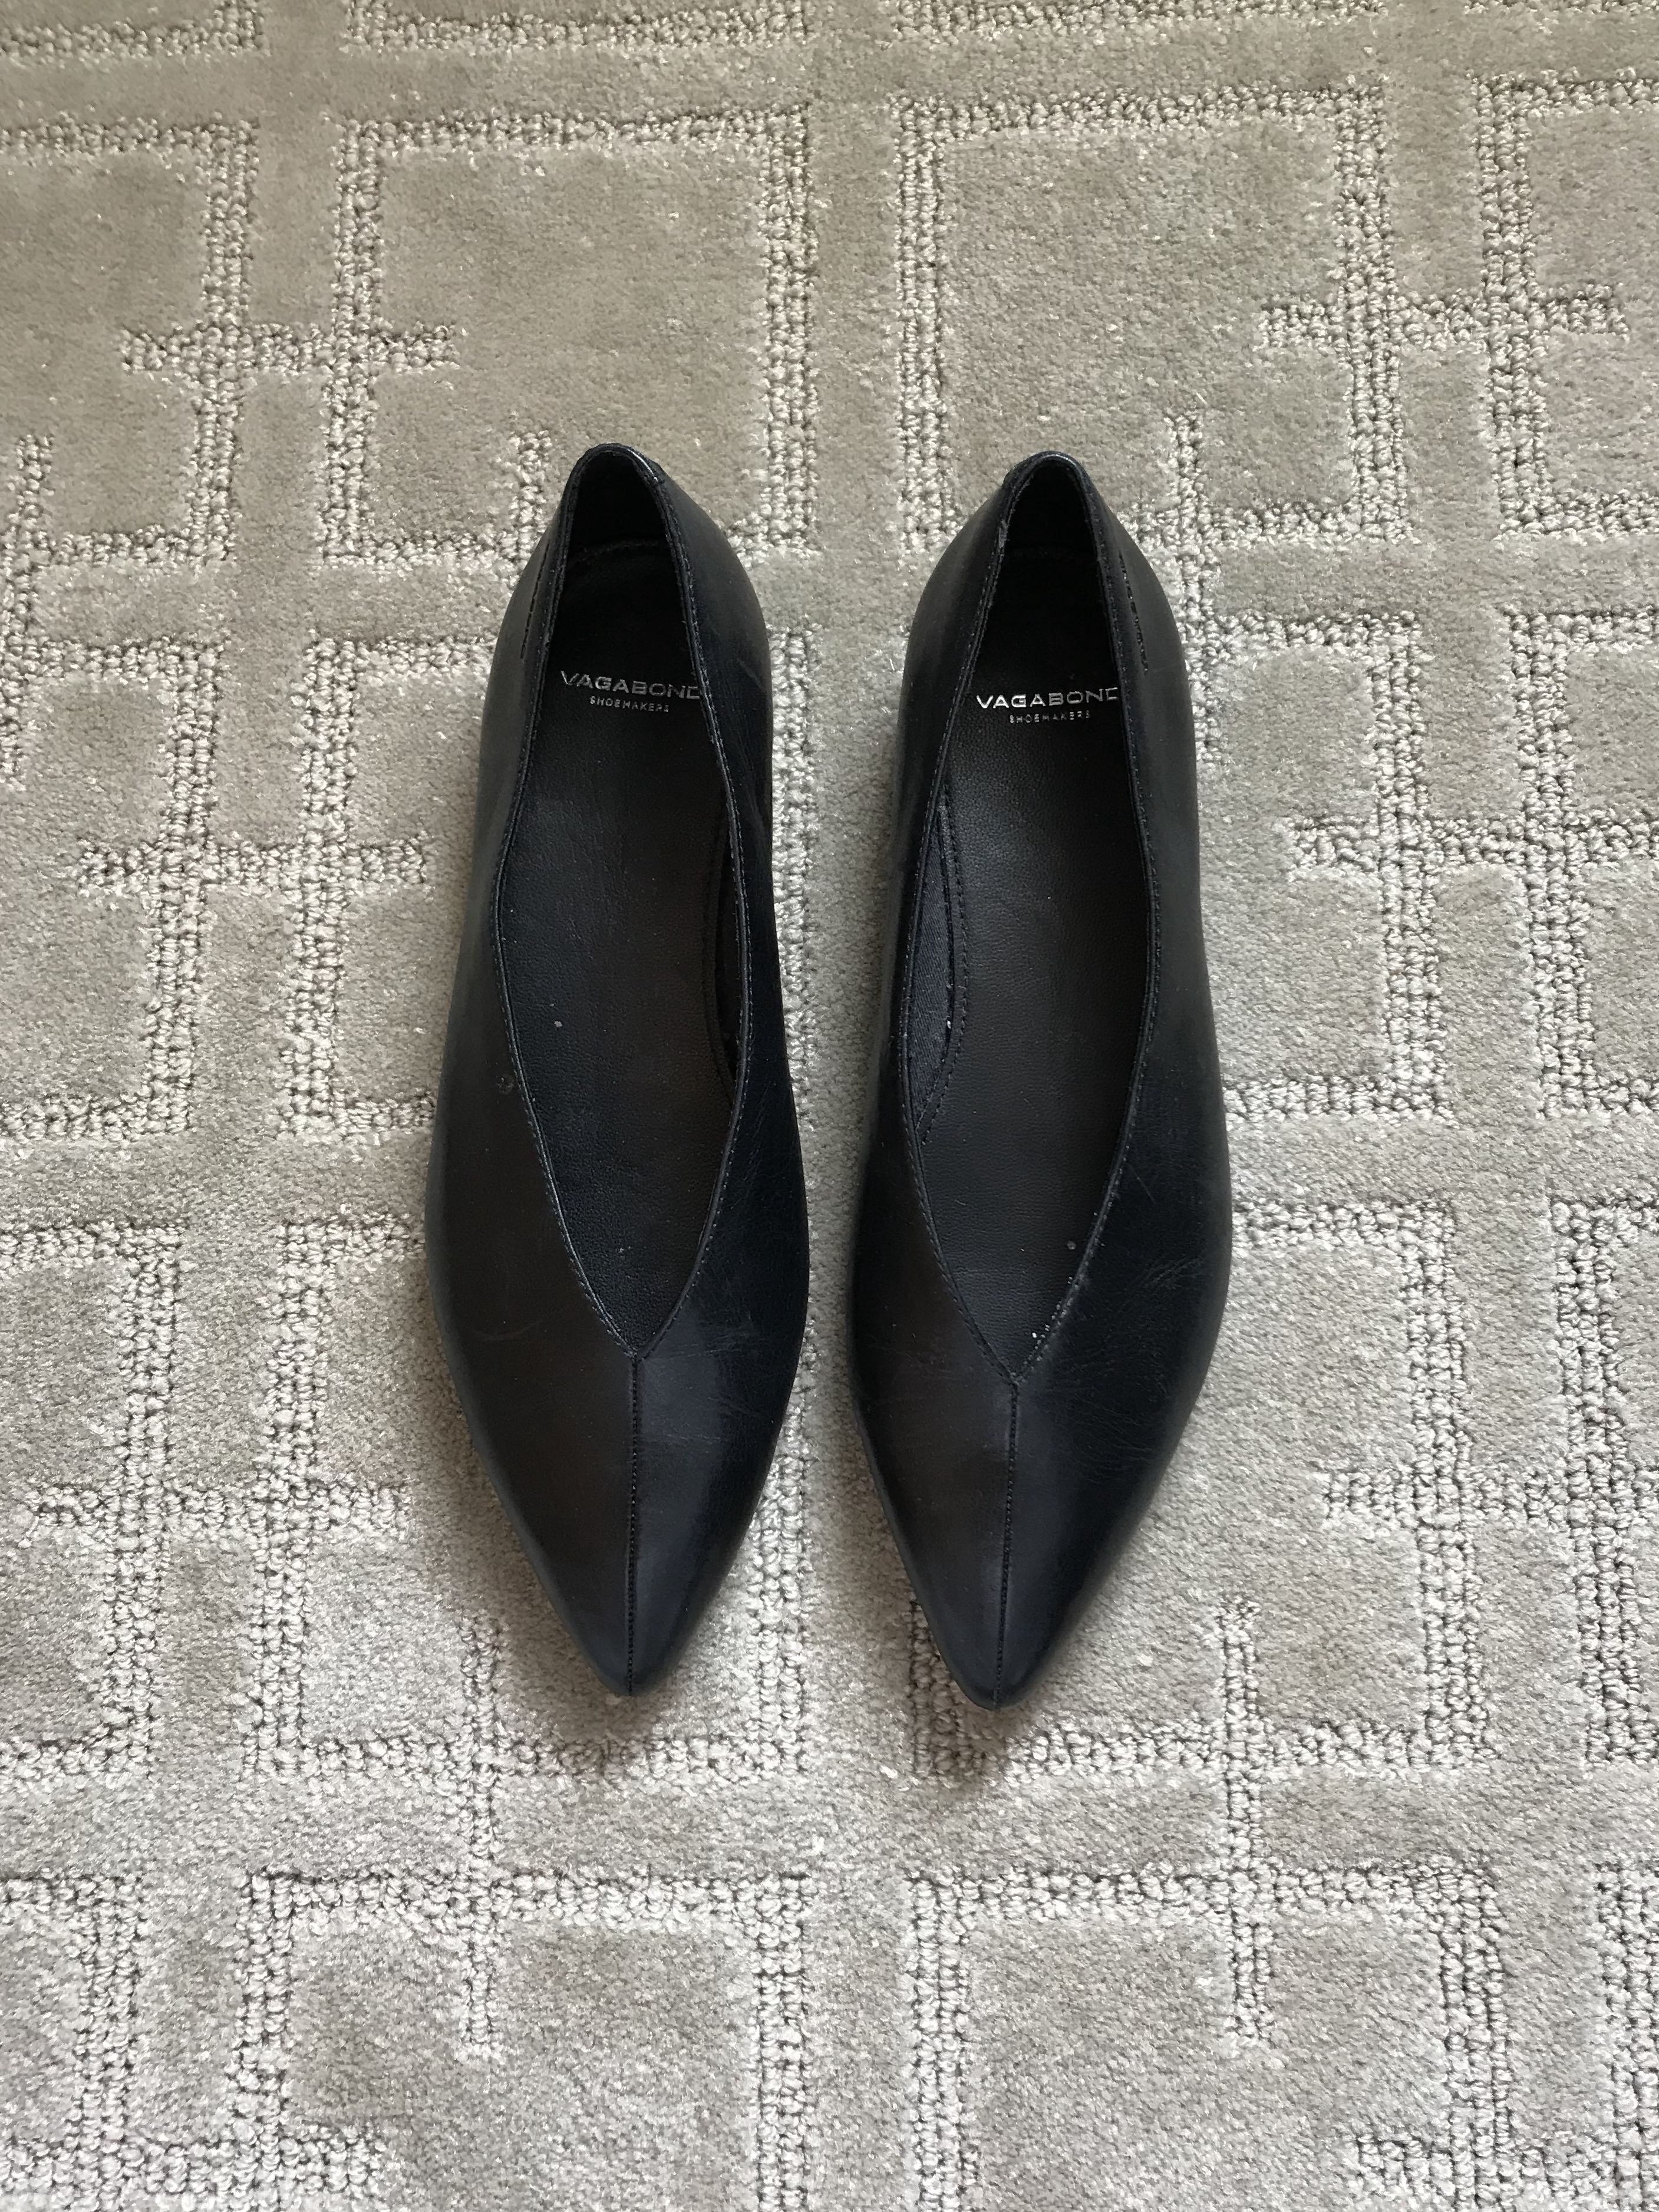 Vagabond leather pointy flats